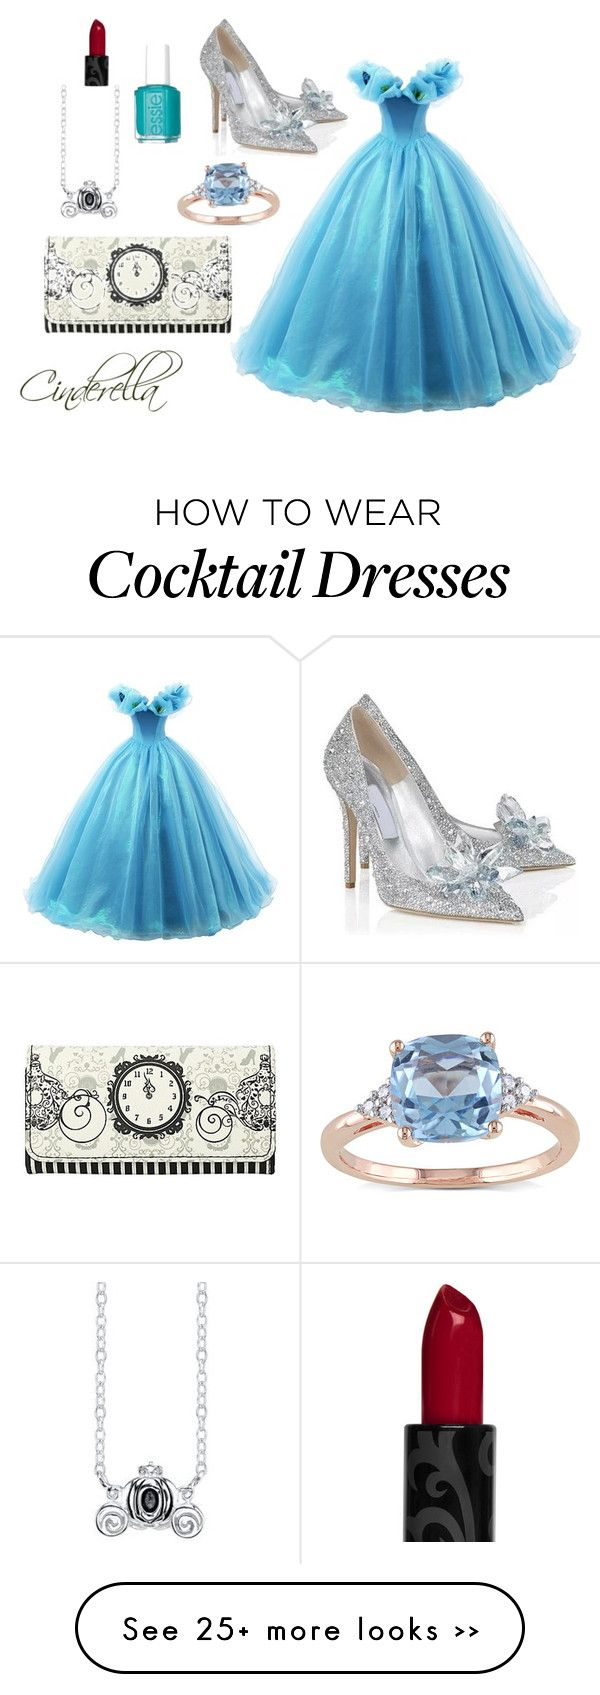 Mobile compatible blood wallpapers drew toepfer -  Cinderella By Ellieack On Polyvore Featuring Disney Essie Miadora And Belk Silverworks